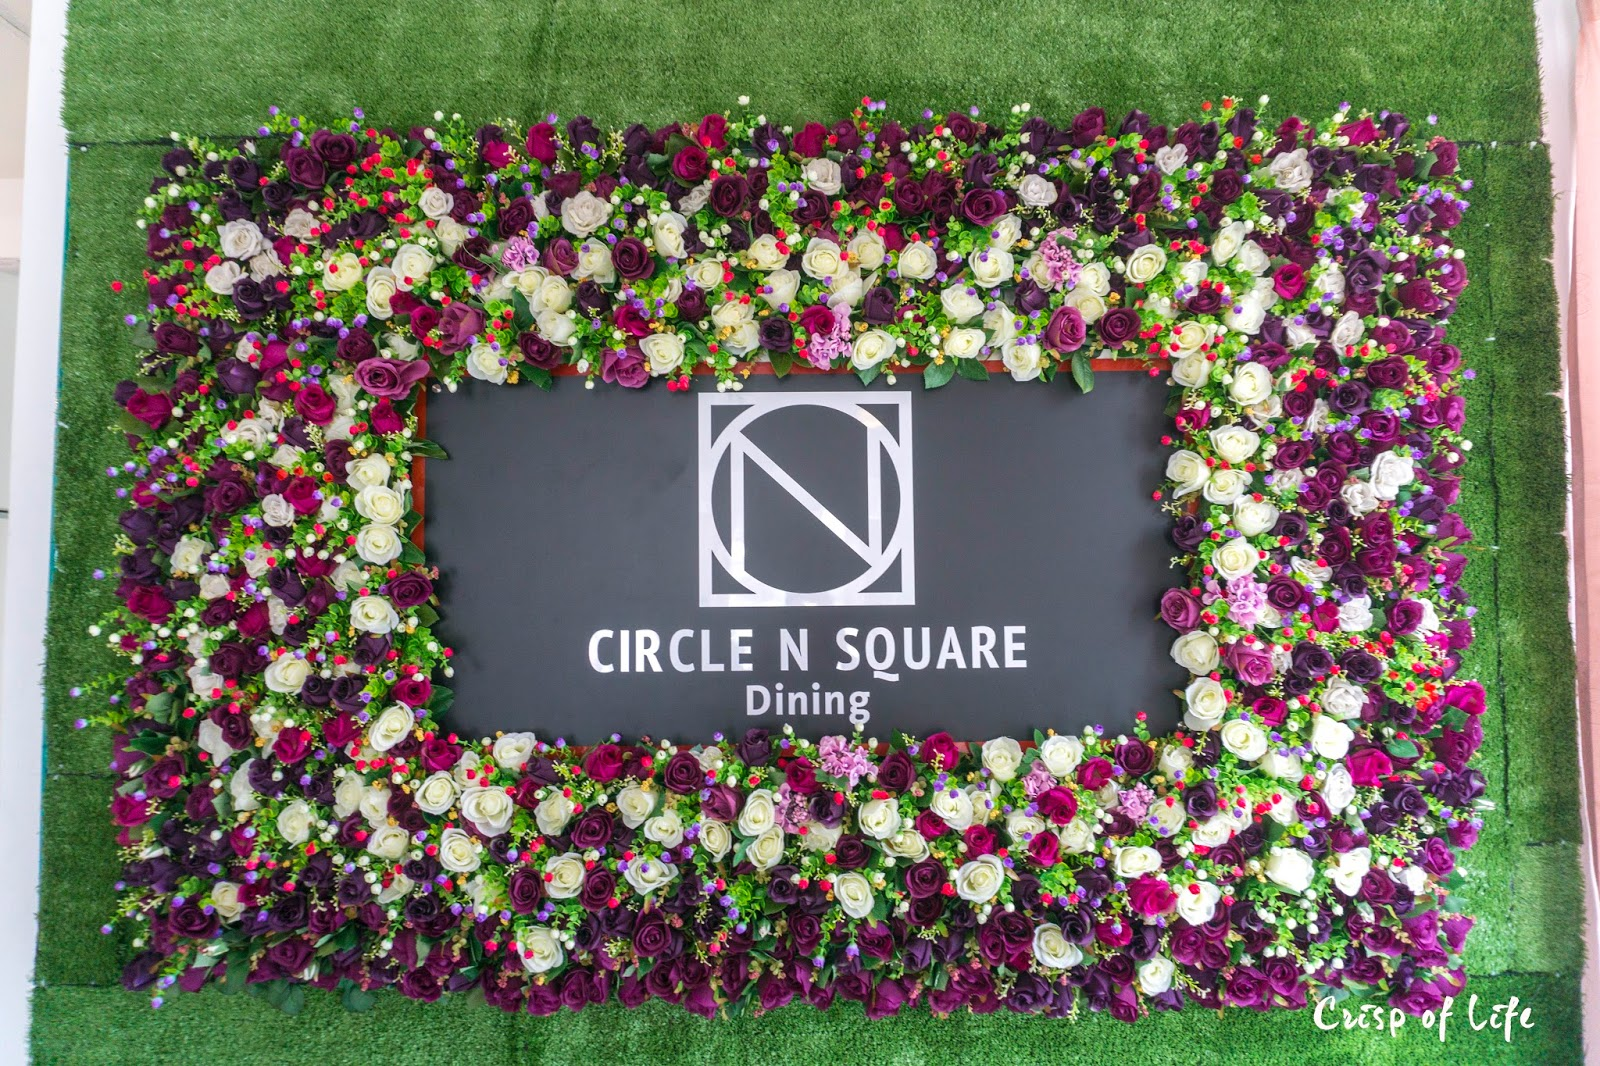 Circle n Square Dining @ Icon City, Bukit Mertajam, Penang